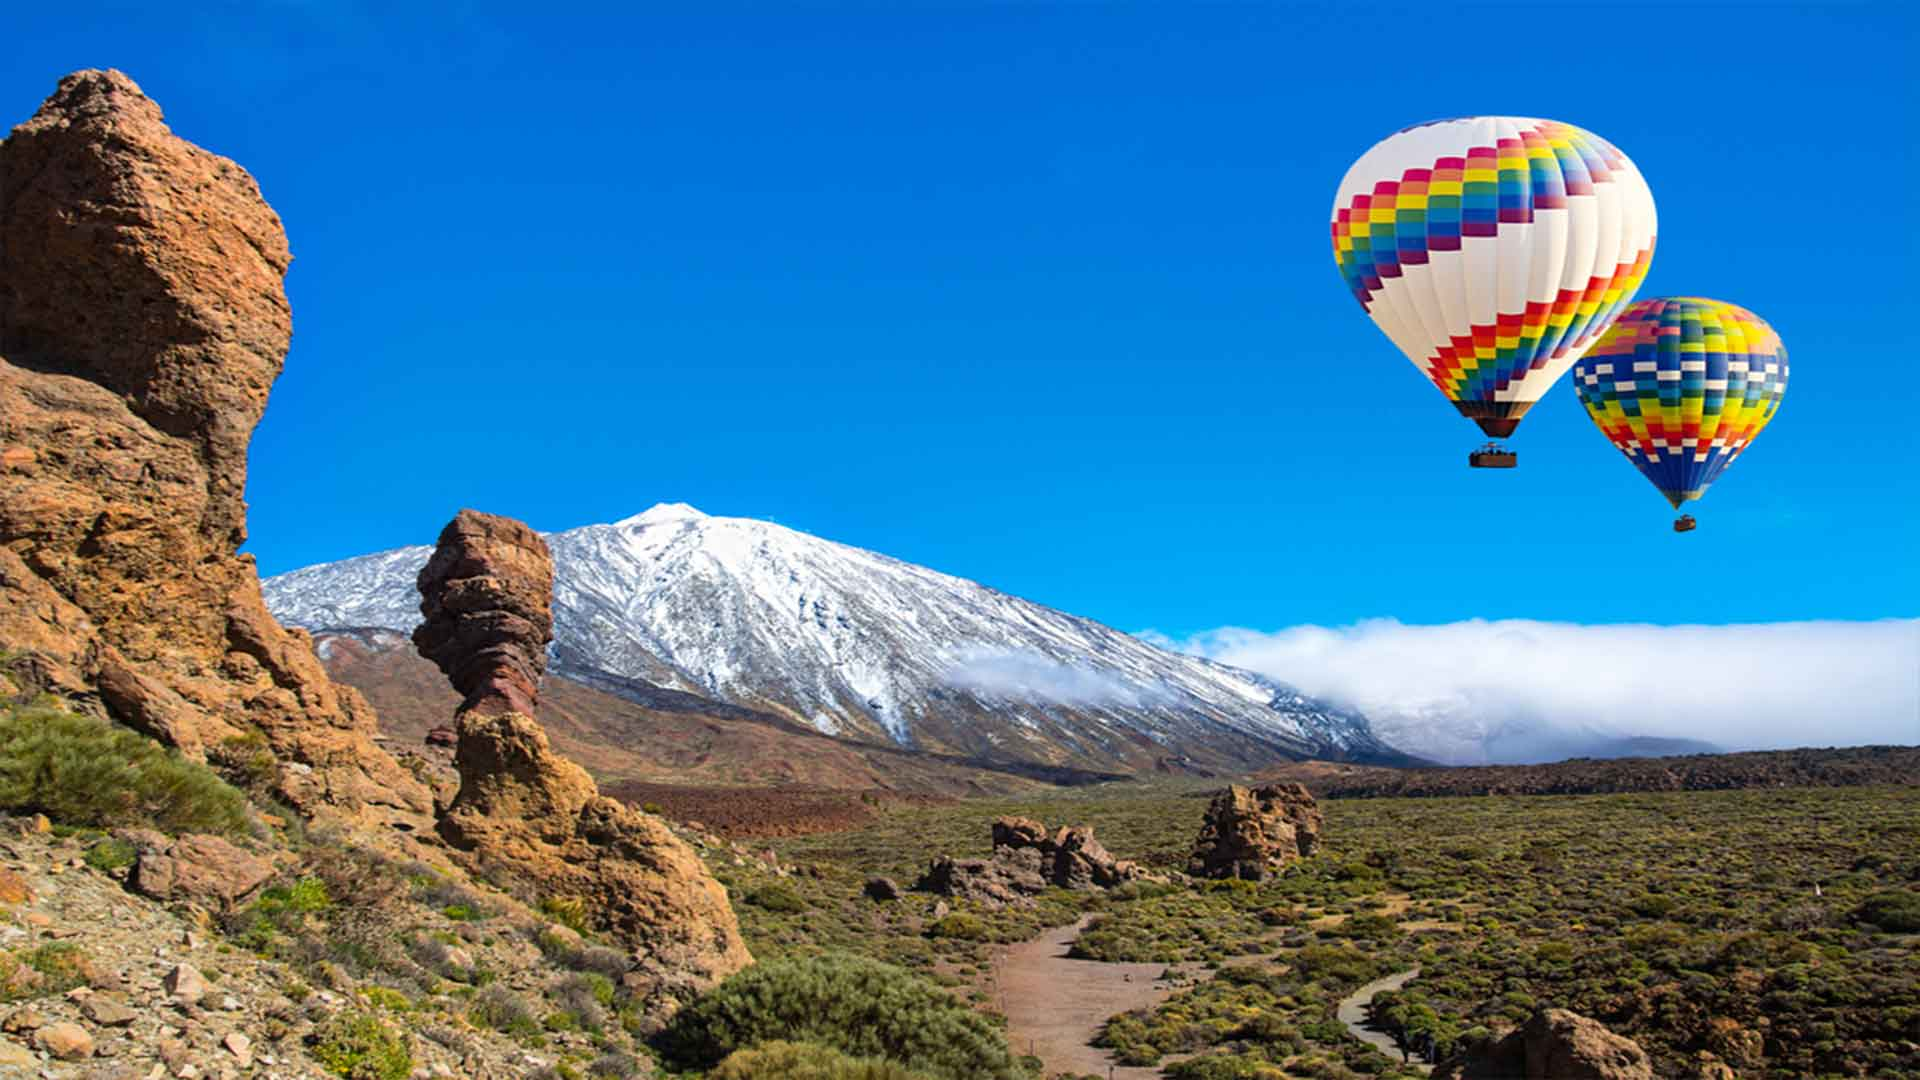 The Ultimate Tenerife Vacation Travel Guide Zen Tripstar Teide National Park Tenerife Canary Islands Spain